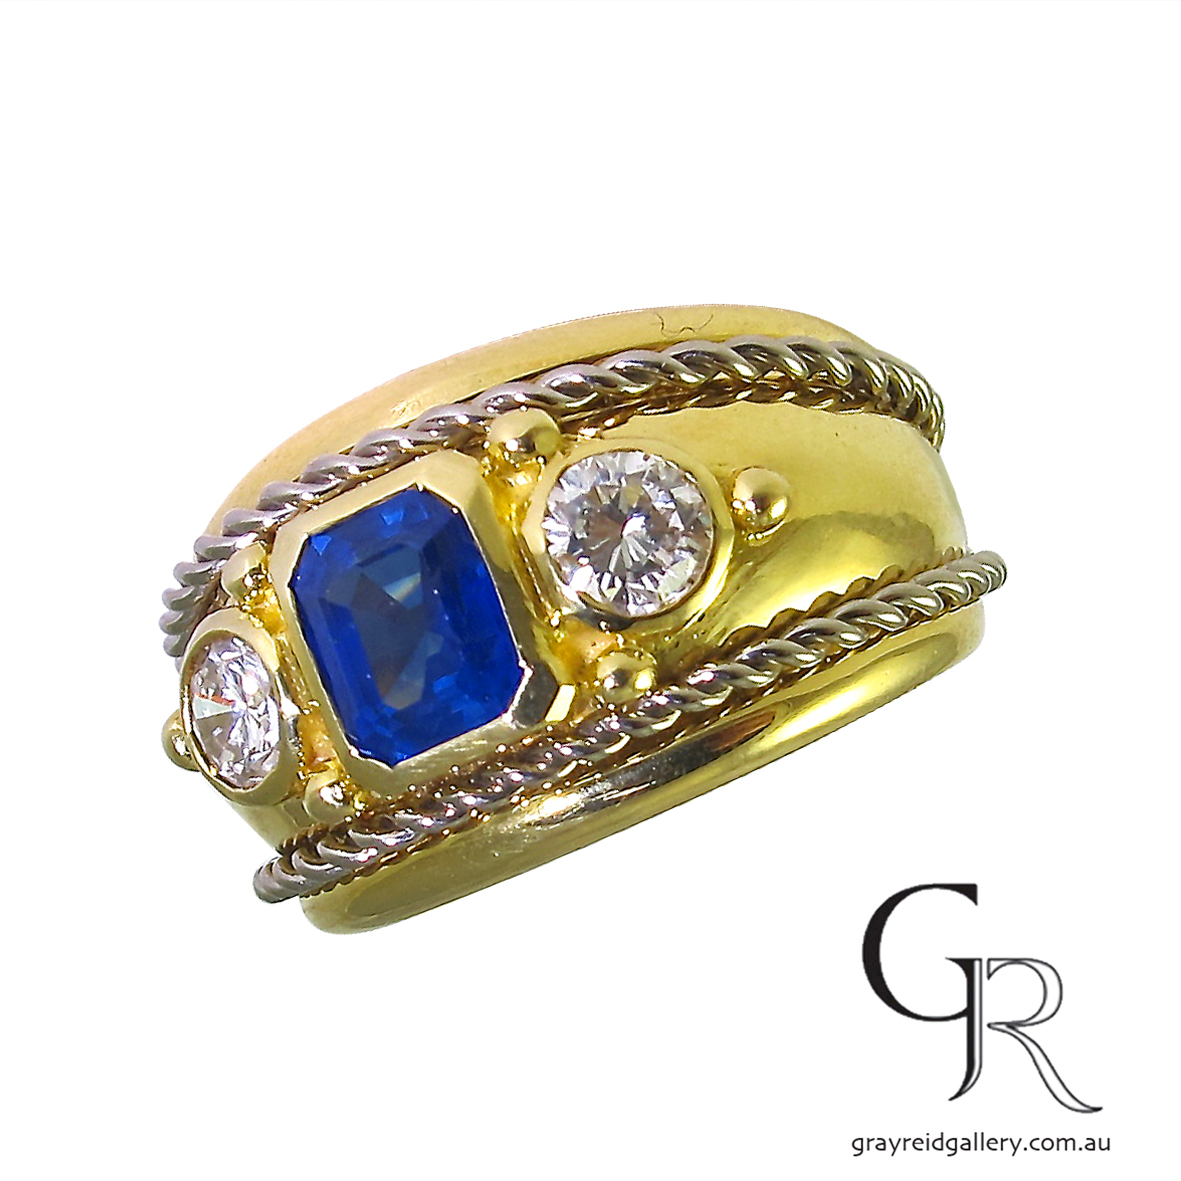 etruscan revival sapphire and diamond ring melbourne gray reid gallery side view.JPG